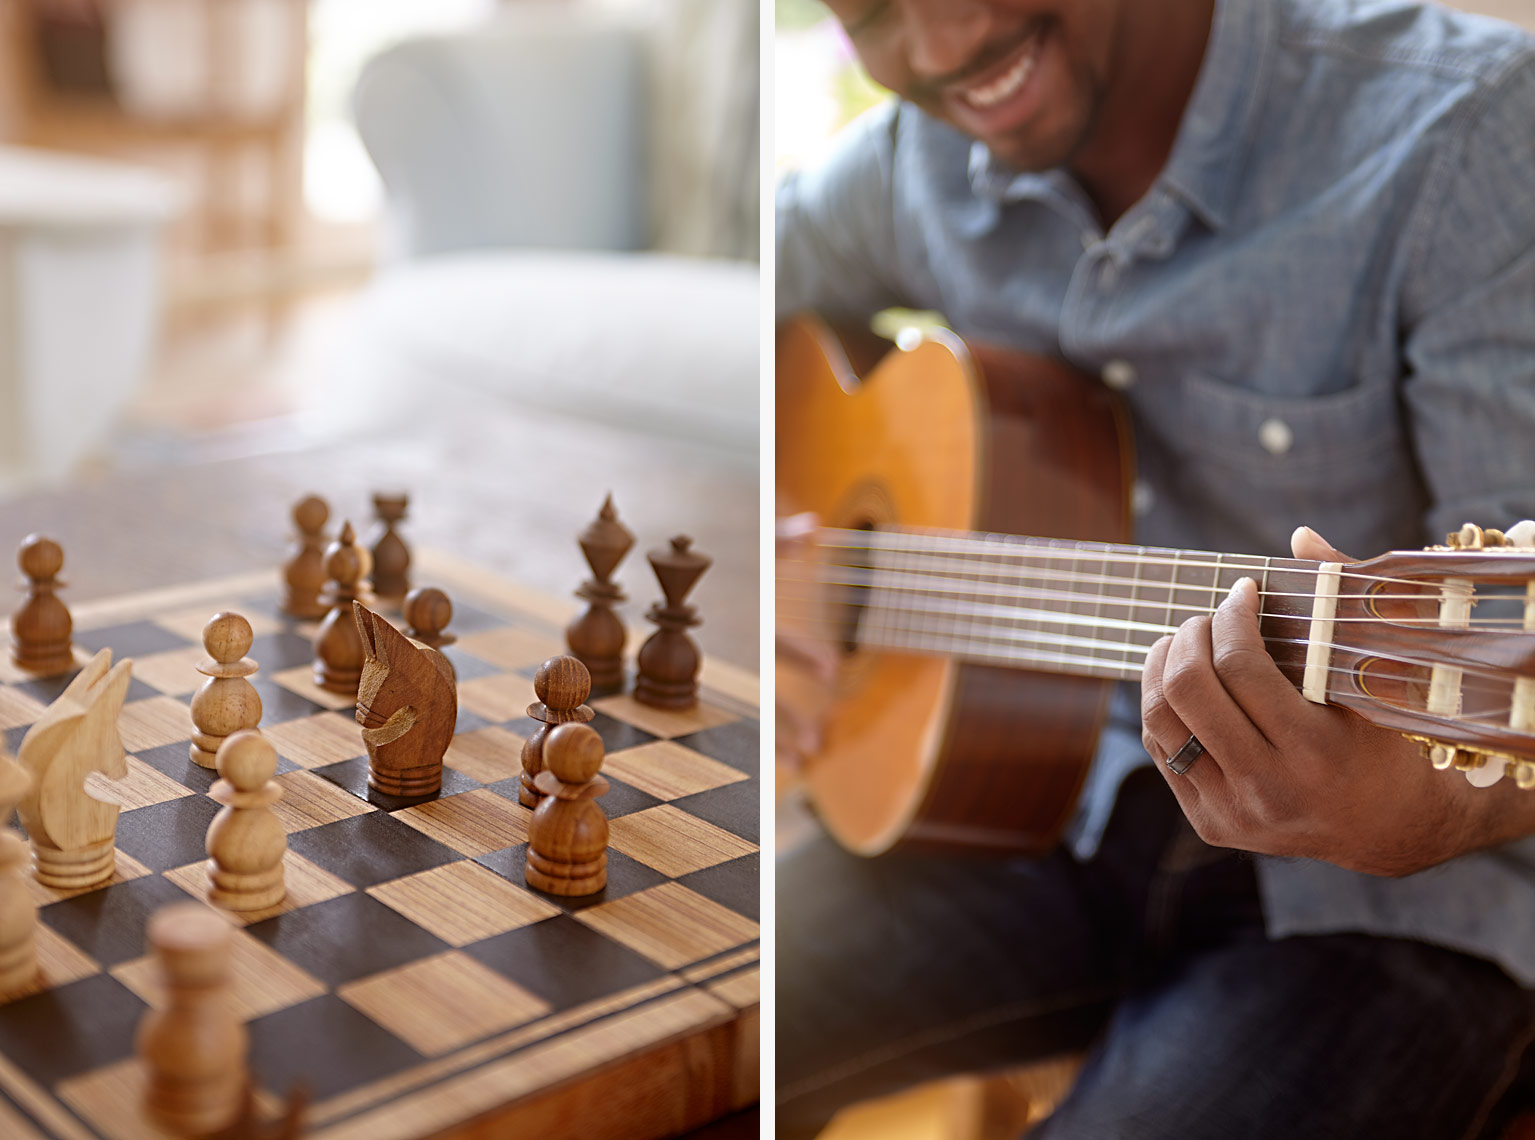 guitar-and-chess